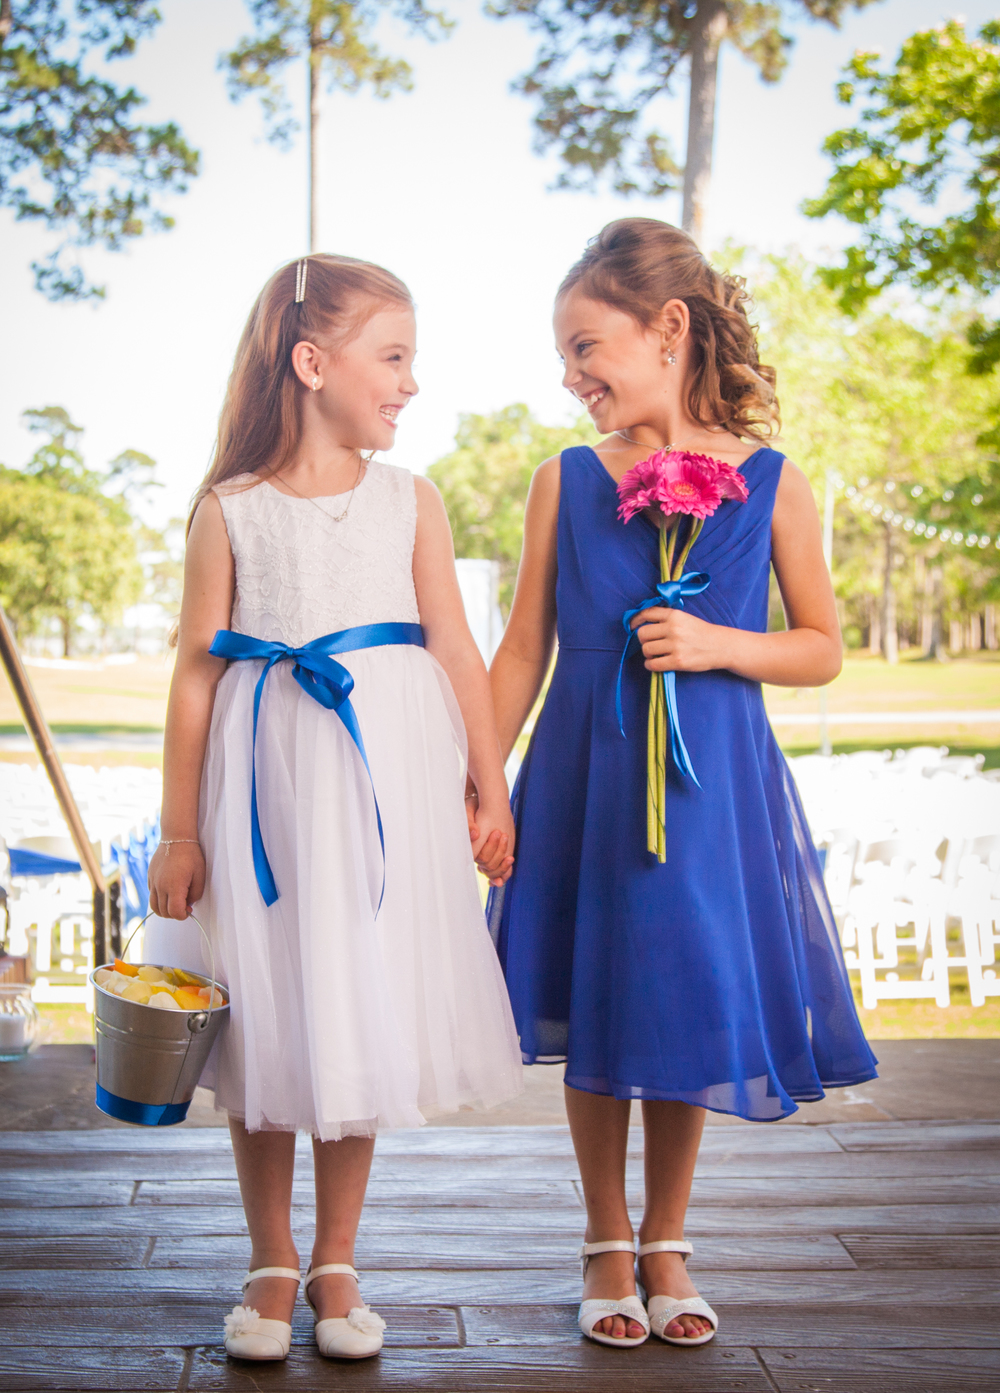 Adorable flower girls in white and blue flower girl dresses hold hands and laugh with each other before the start of the wedding ceremony.